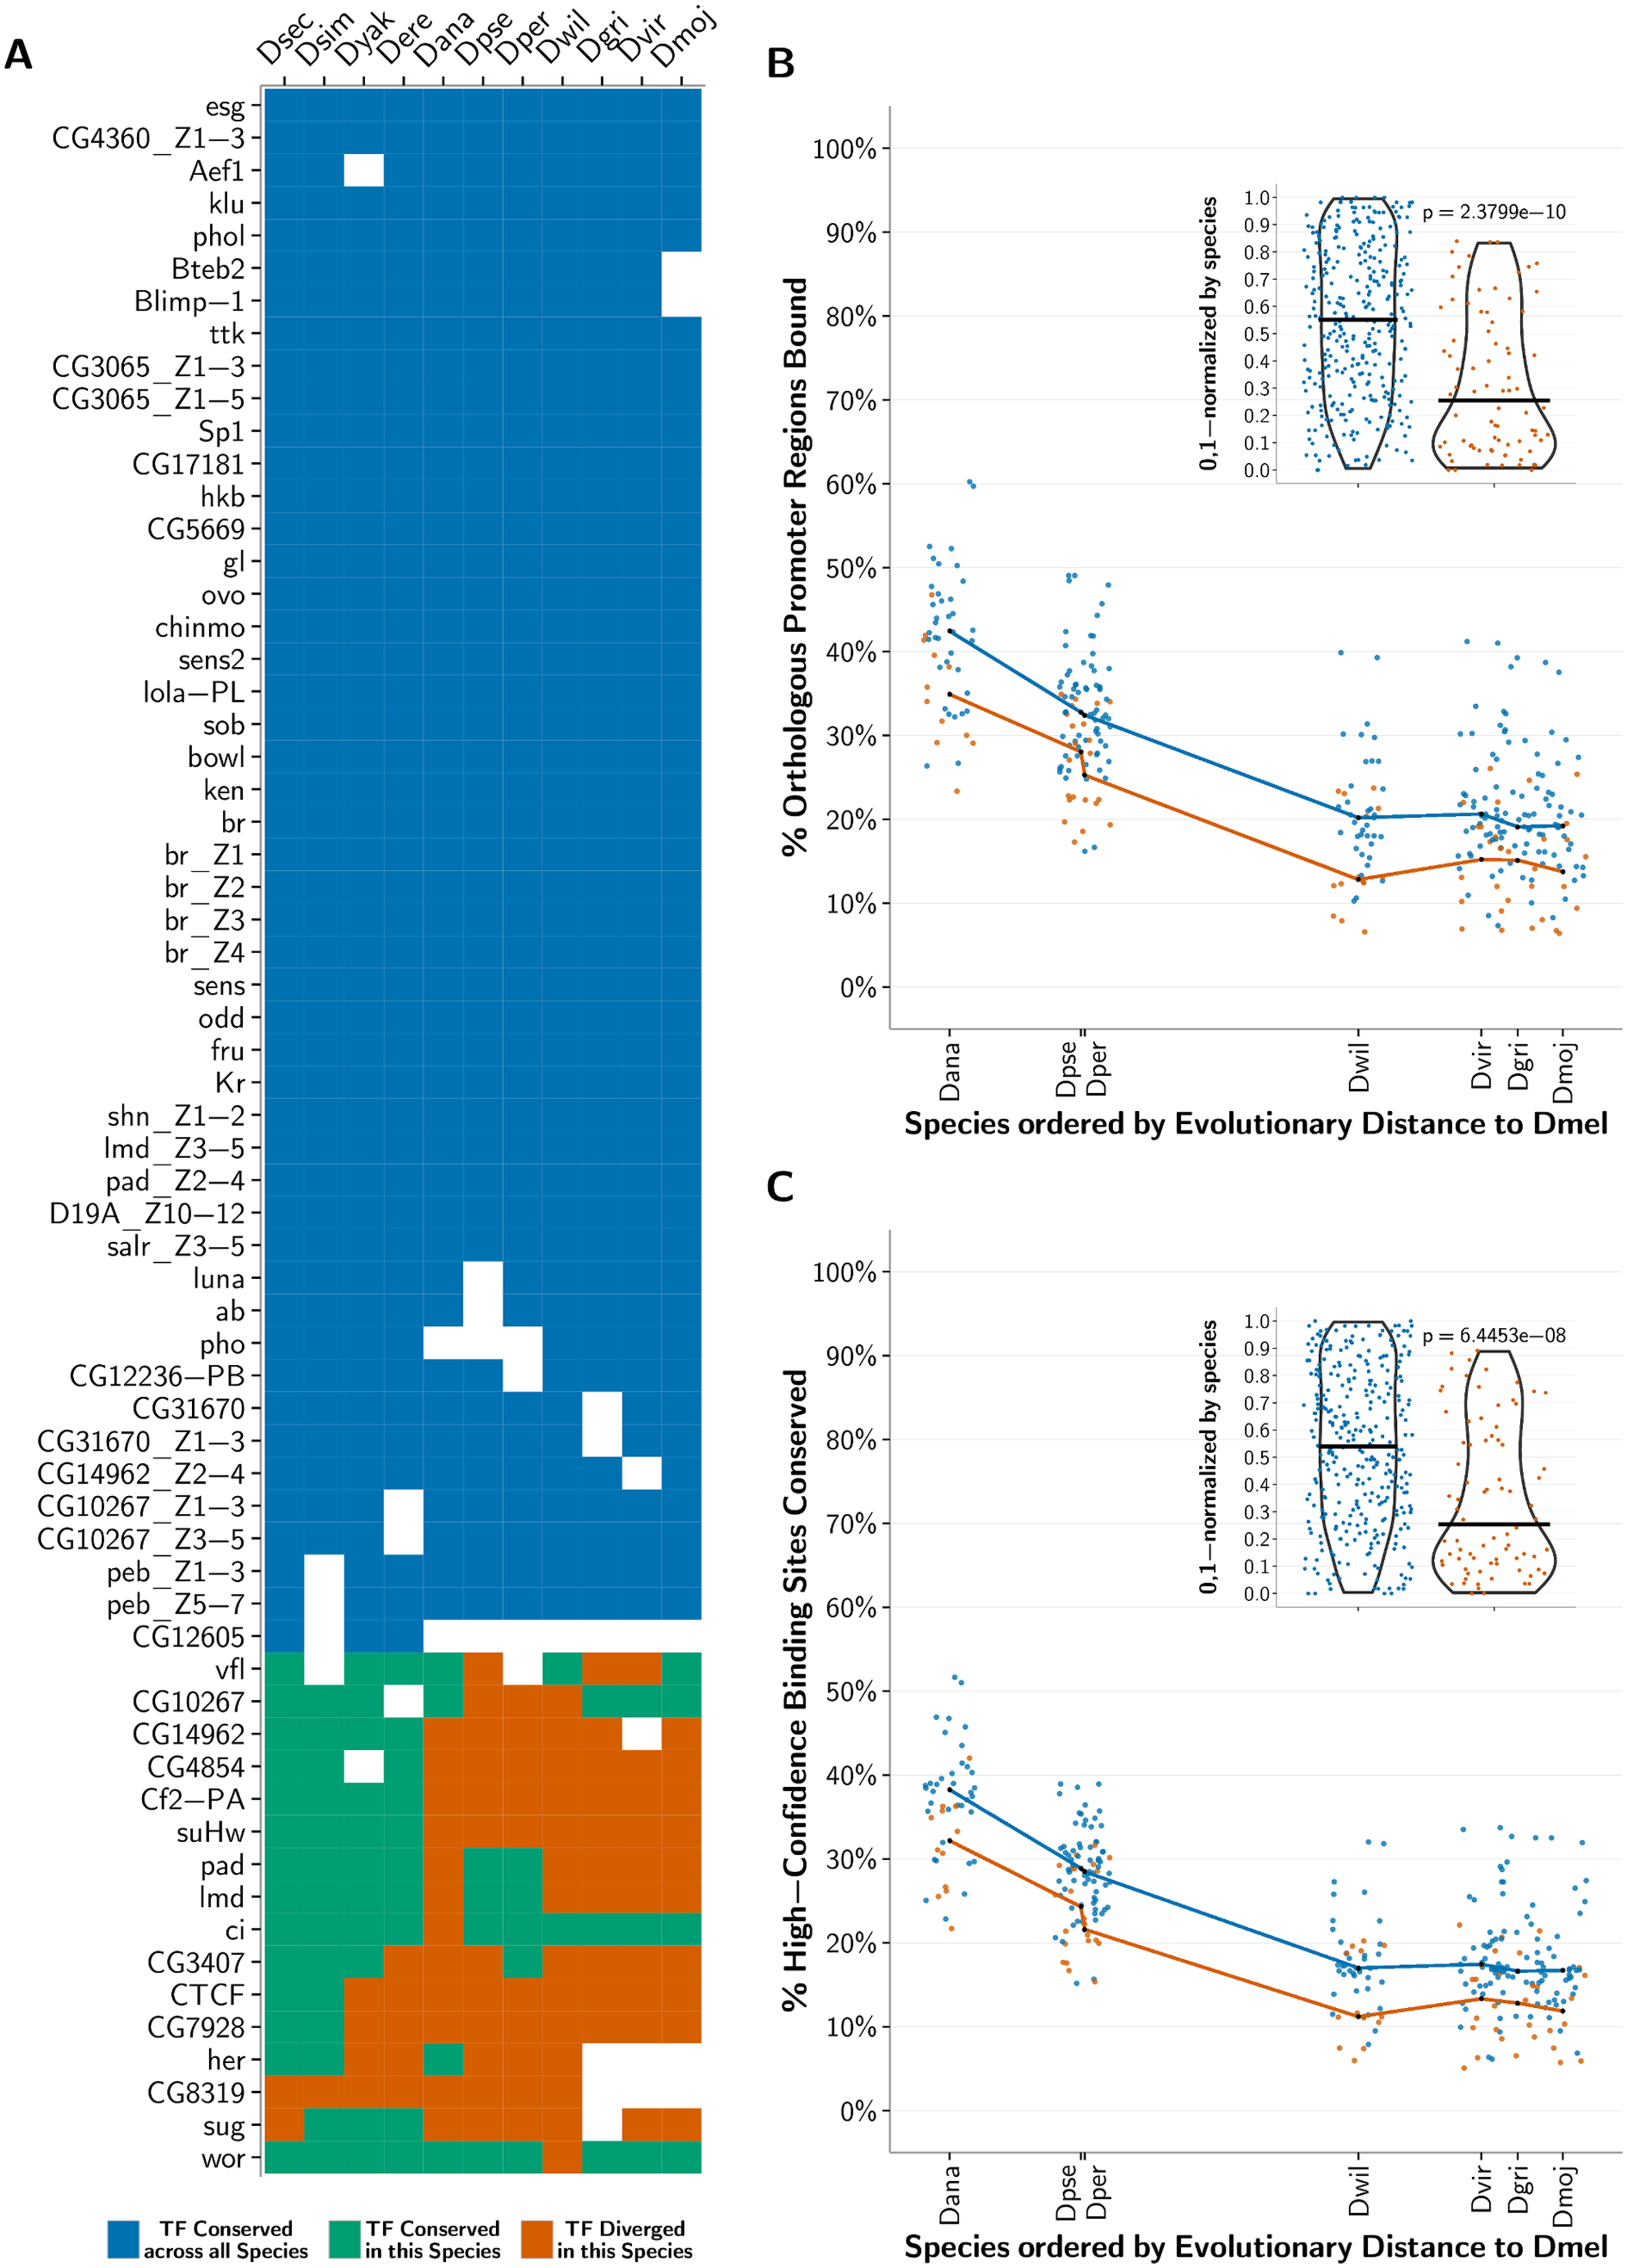 Conservation of predicted binding motifs for experimentally derived PWMs across species.